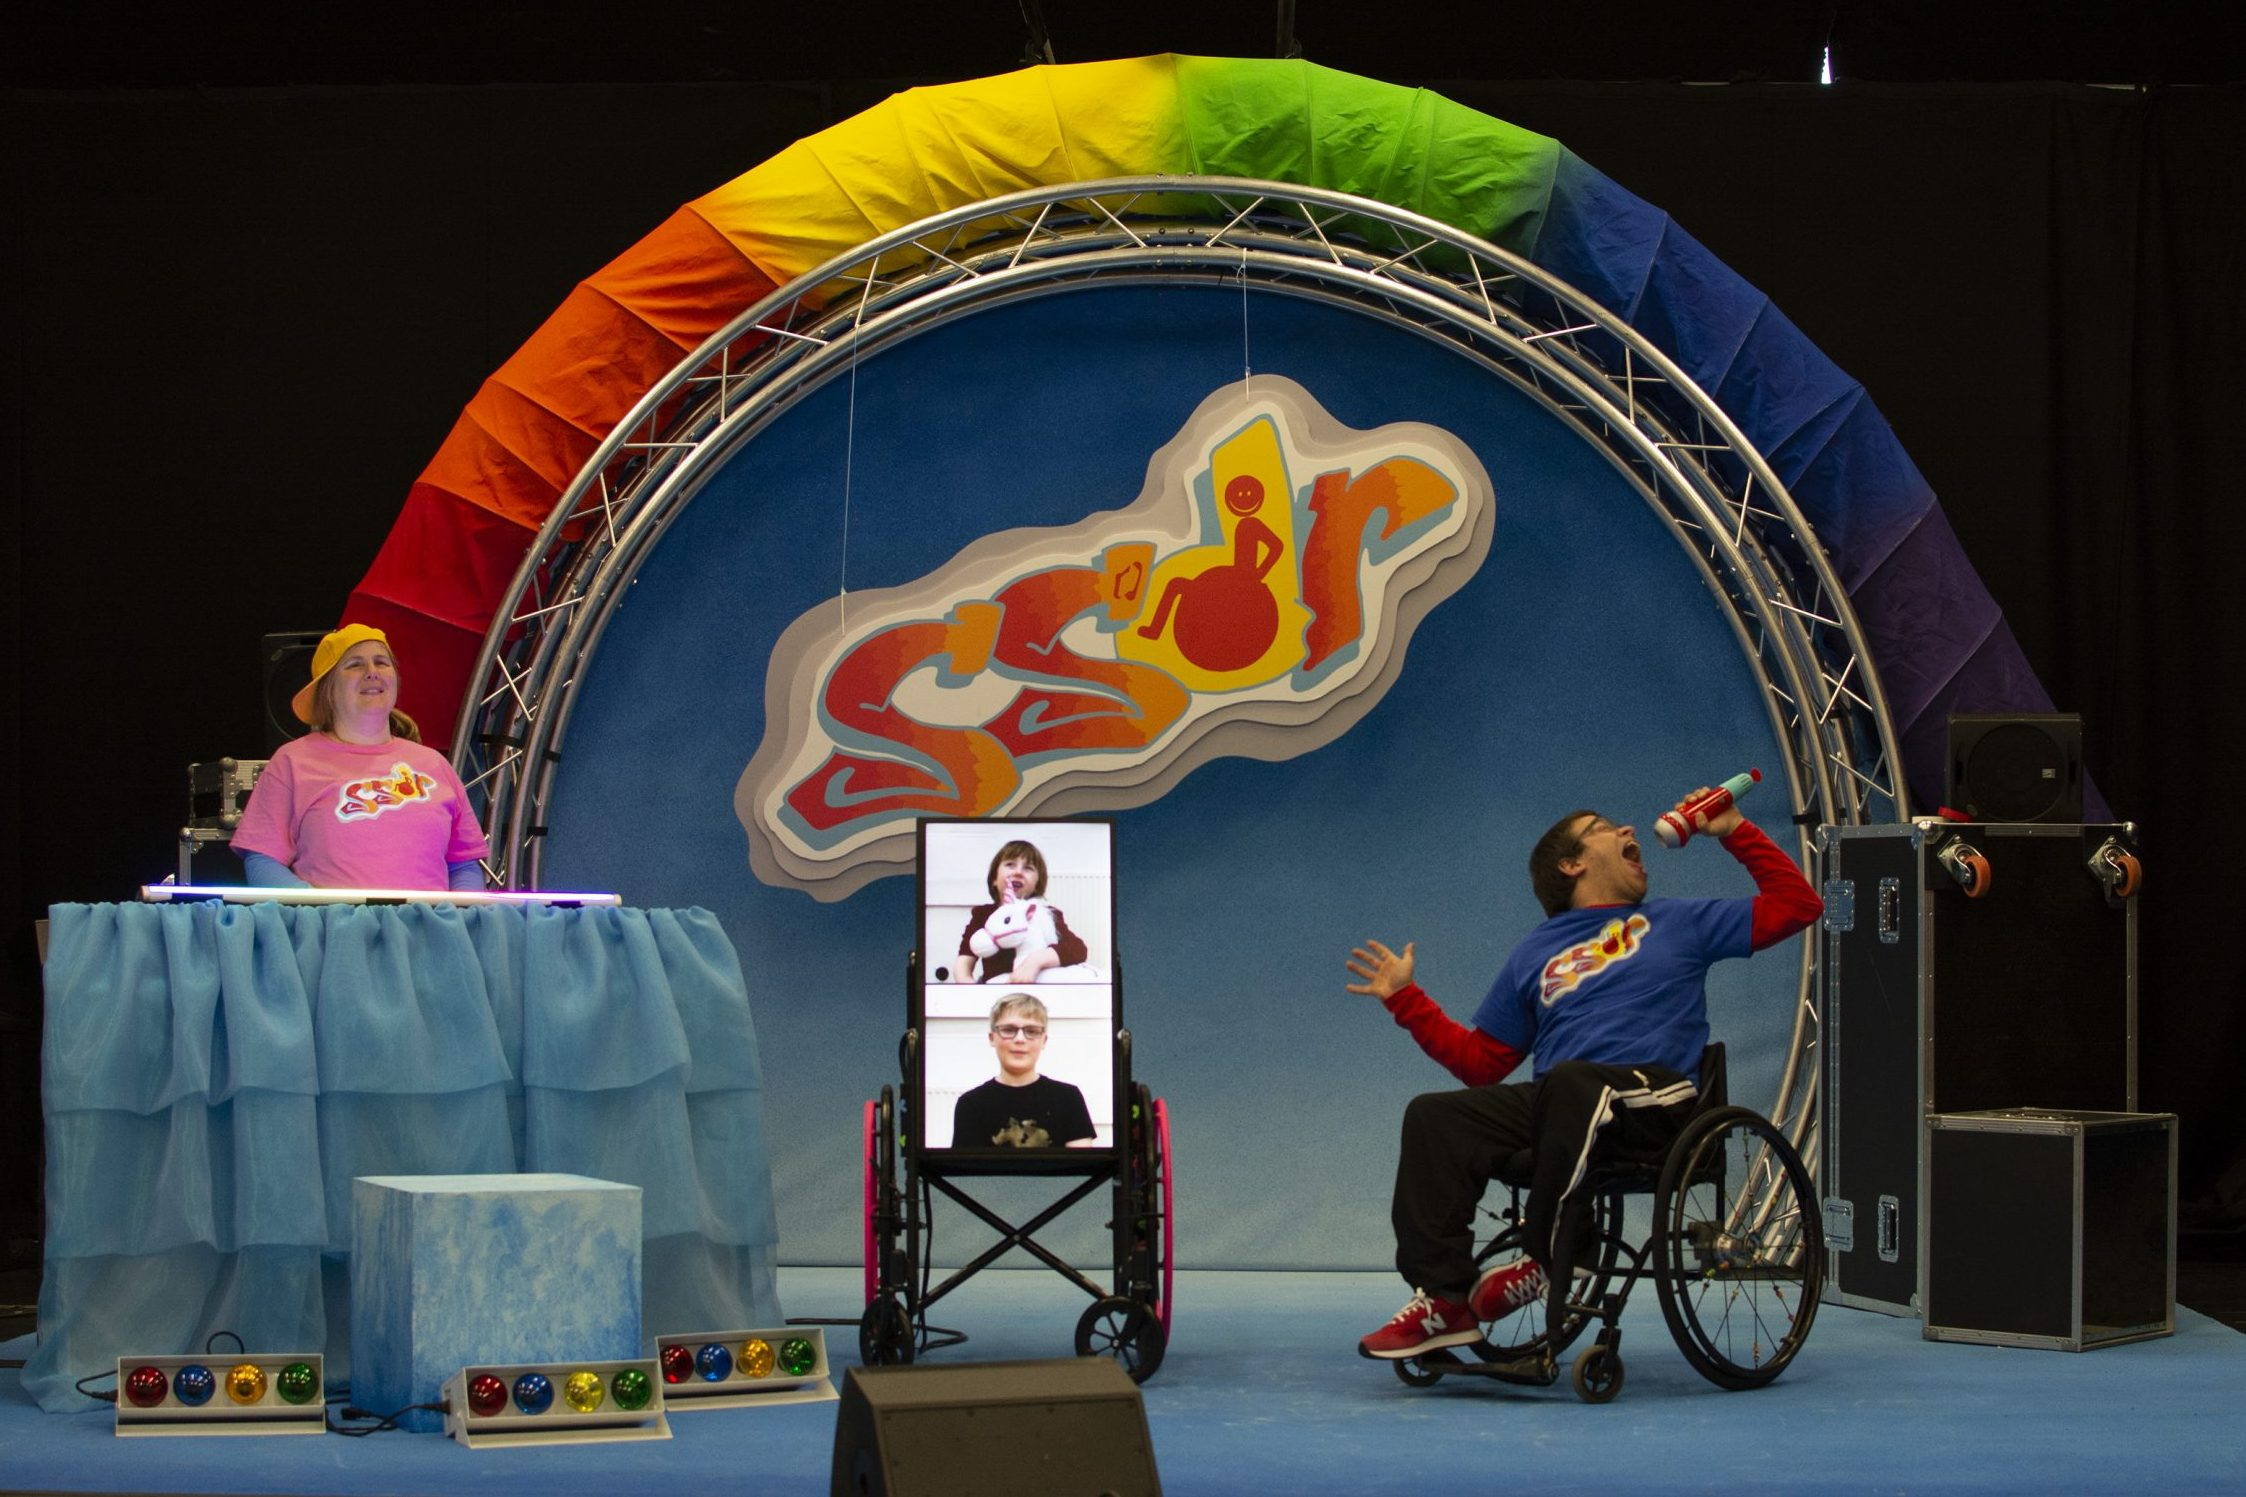 The woman is standing on the left behind the musical equipment that is covered in a blue sheet. She is smiling. On the right, the man in the wheelchair is holding a microphone with his mouth wide open and his head thrown back. In the middle of them, there is a screen on wheels with two people on it against a white background. One of these people appears to be holding a white toy pony.